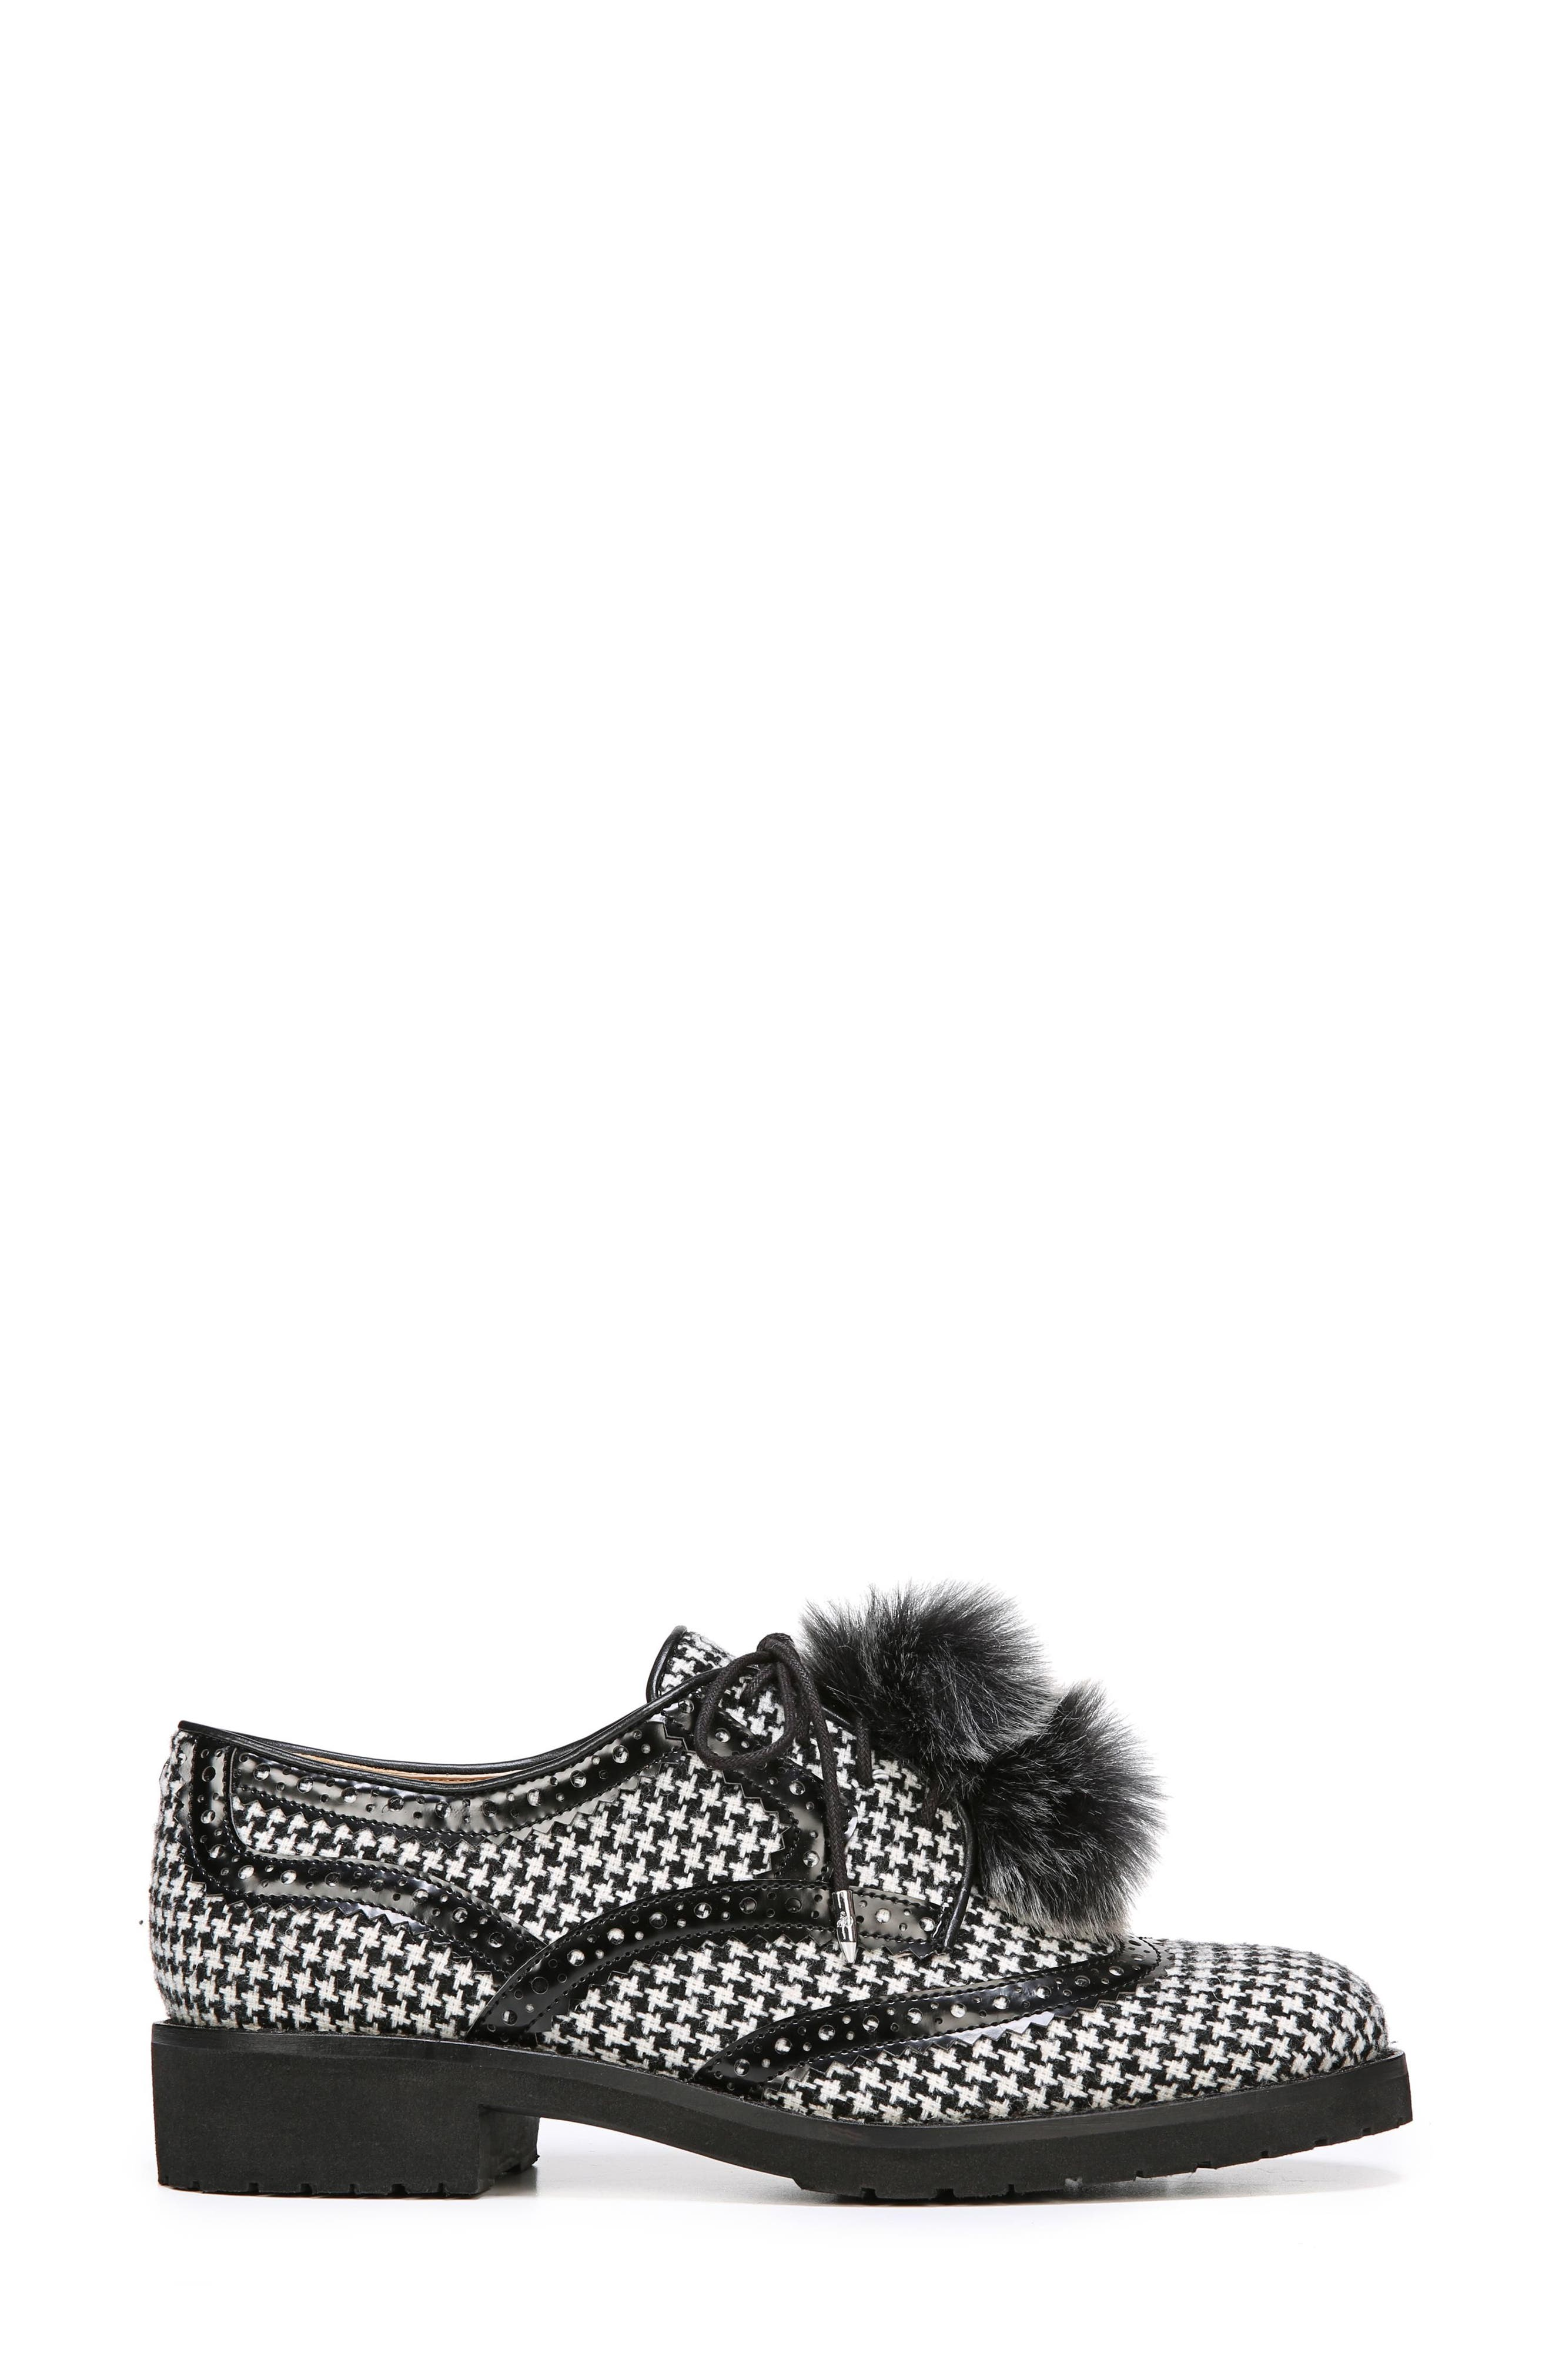 Dahl Oxford with Faux Fur Pompom,                             Alternate thumbnail 3, color,                             Black/ White Houndstooth